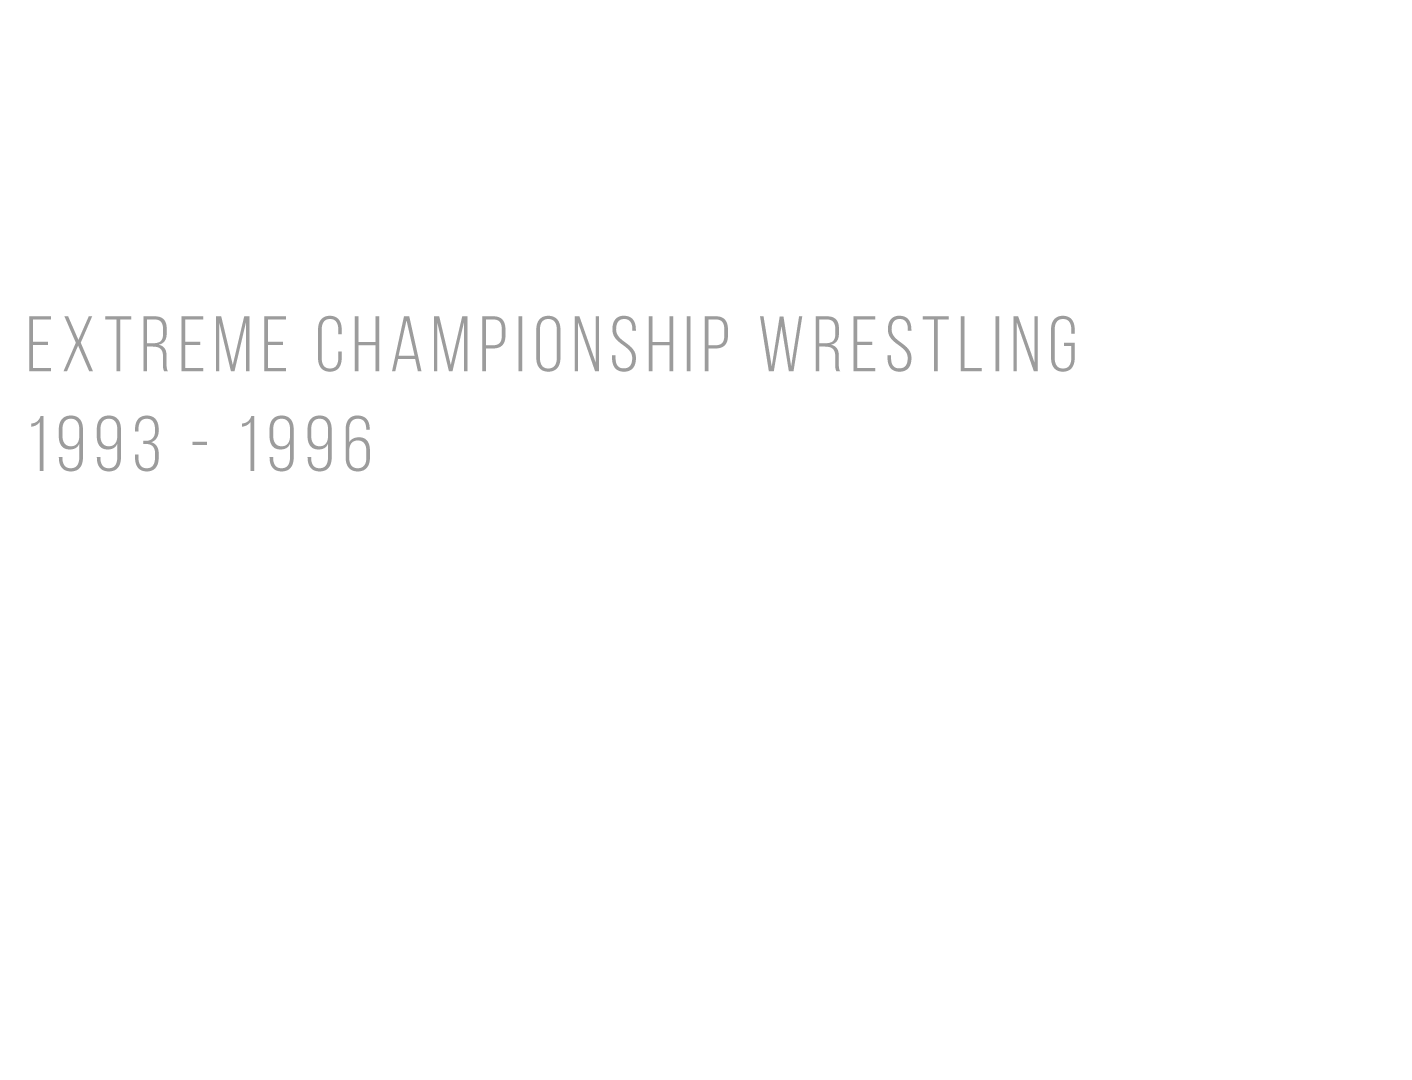 ecw early years title.png